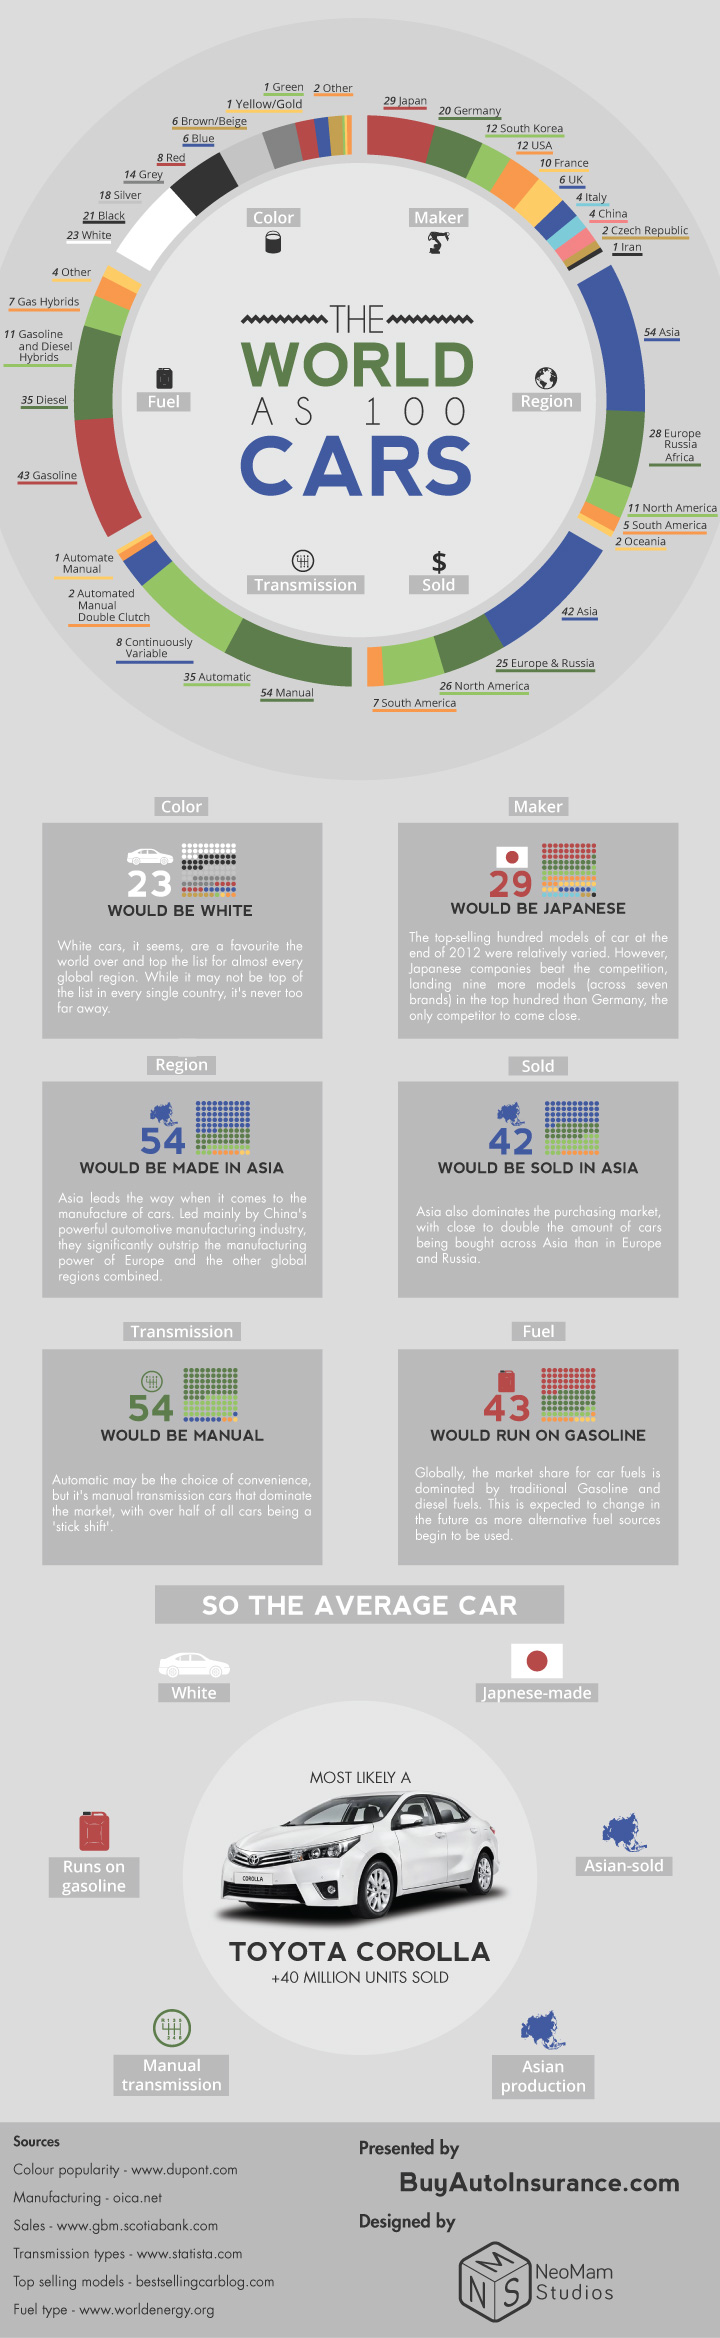 Auto World 100 Cars Infographic